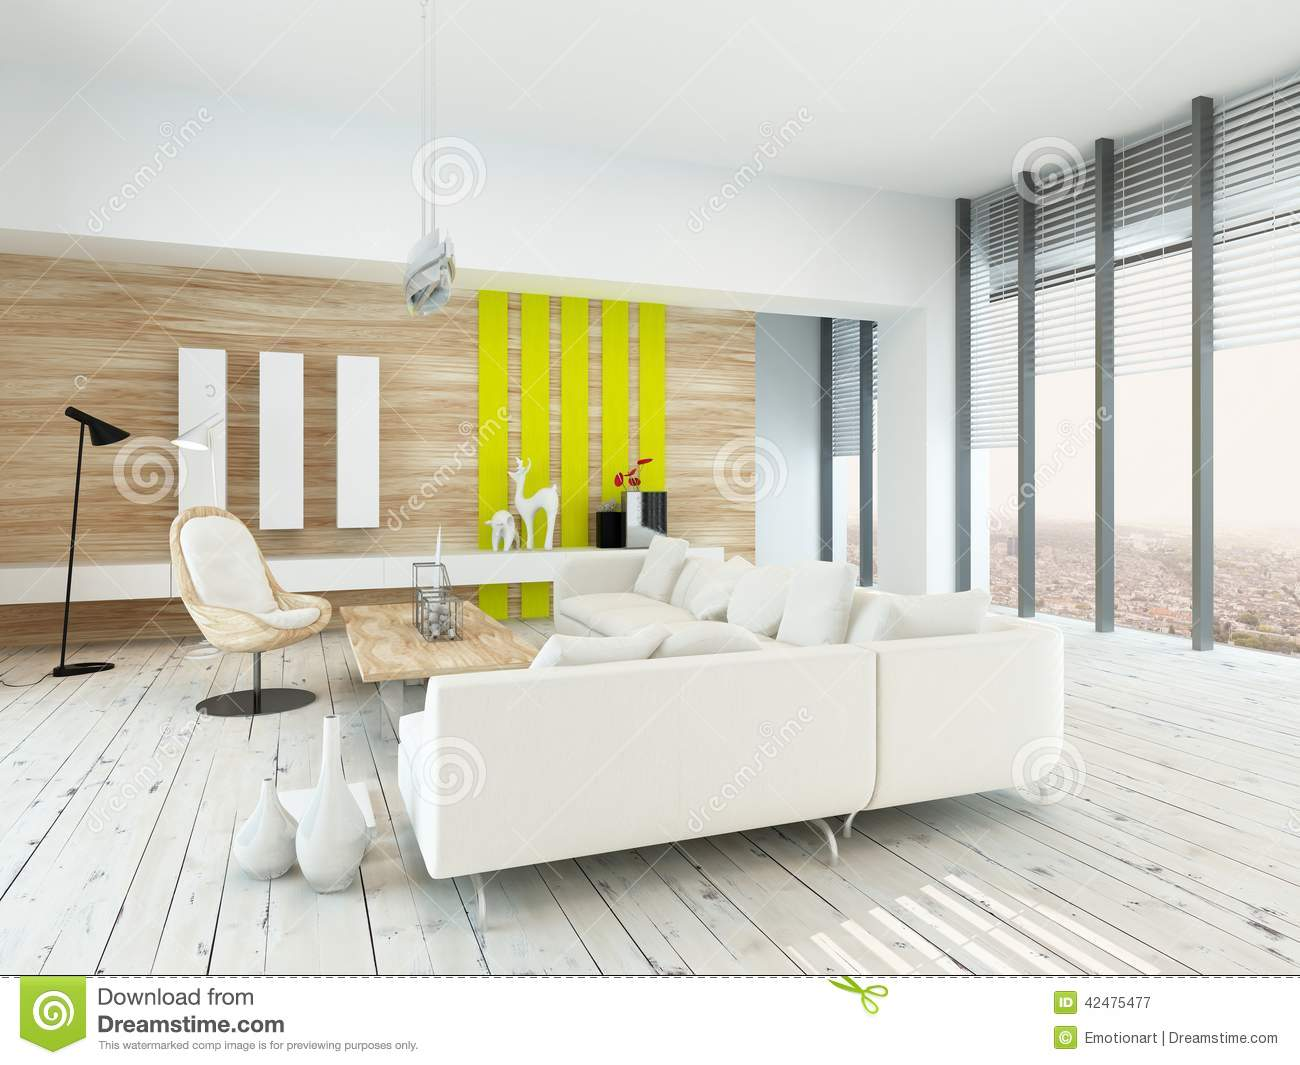 Bright Airy Living Room With Rustic Decor Stock